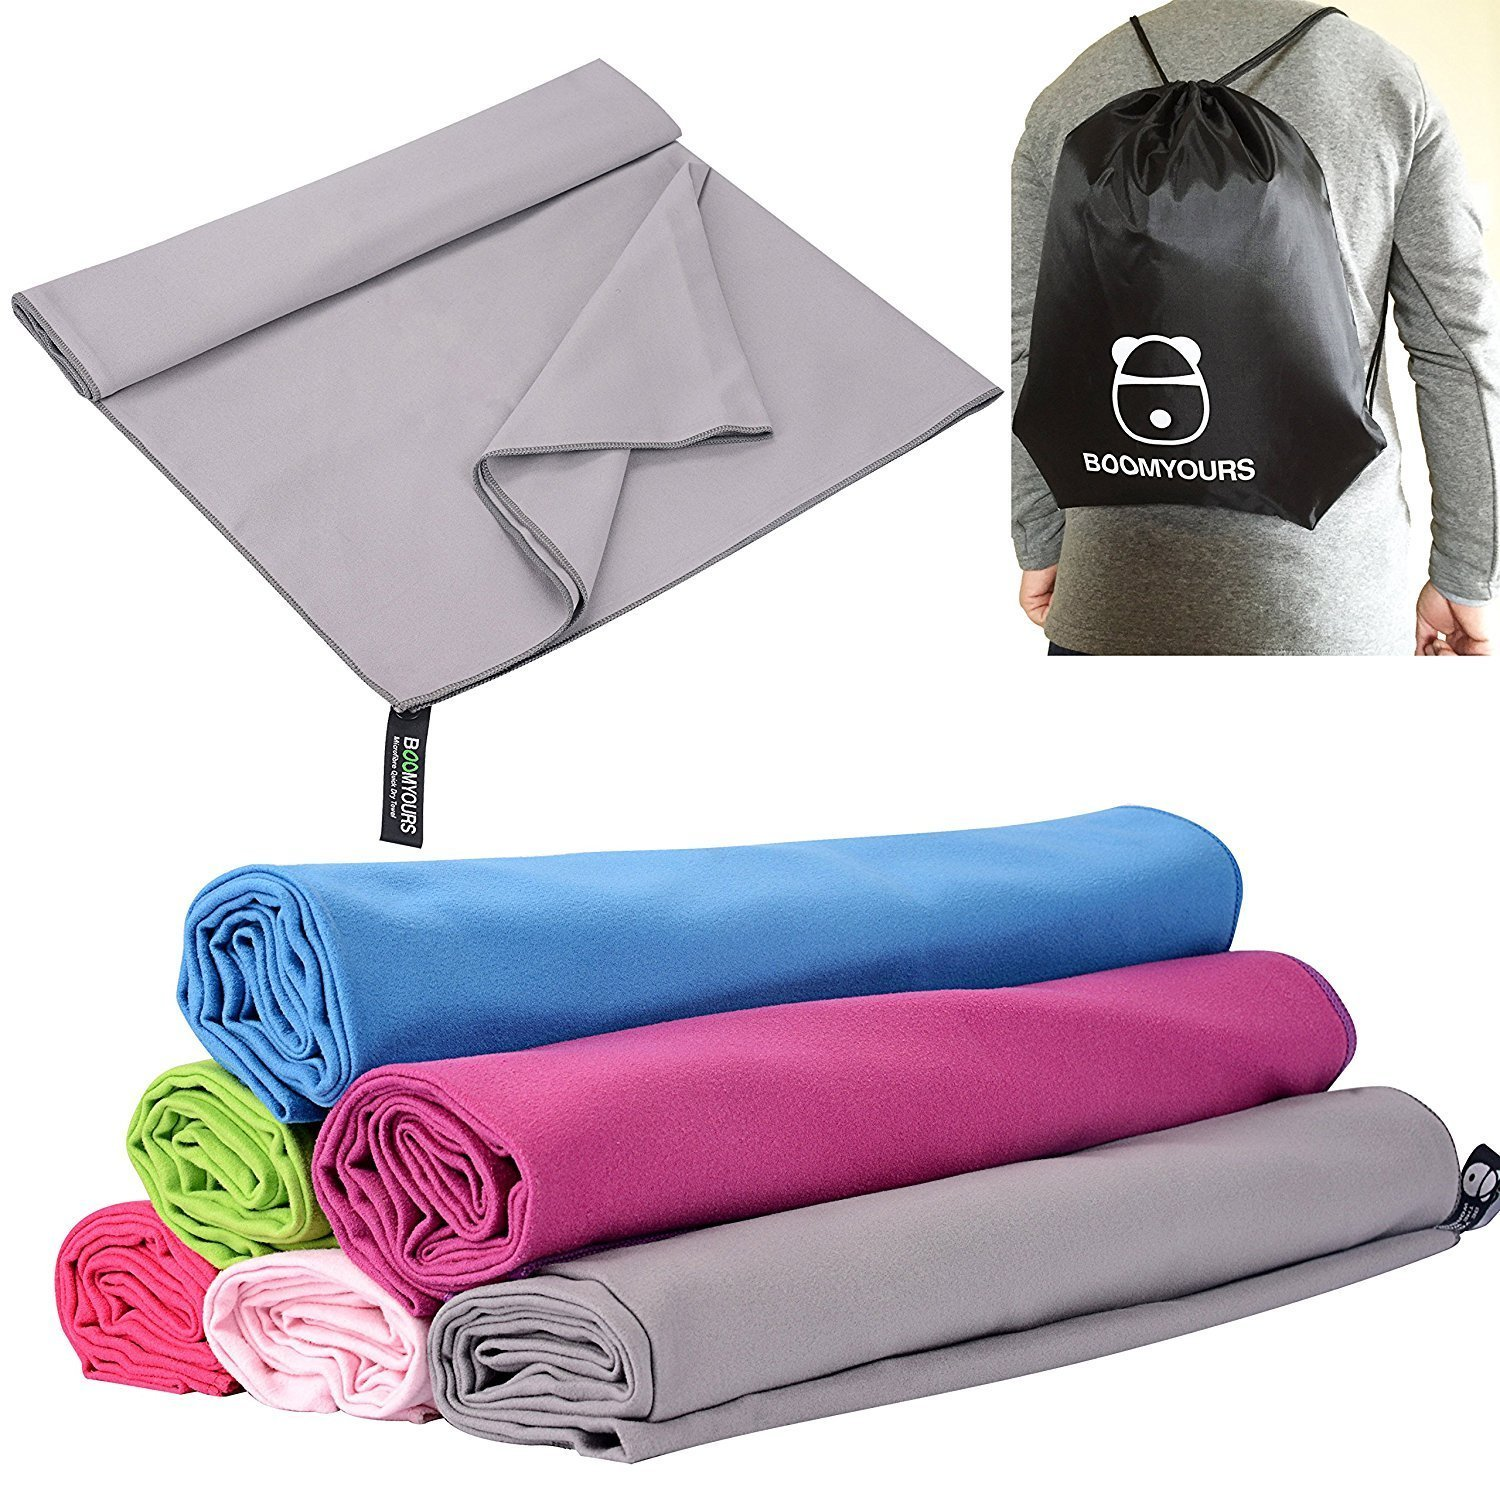 BOOMYOURS Microfibre Quick Dry Towel for Travel,Sports,Gym,Yoga,Swimming,Beach Includes Free Sports Drawstring Bag Large//Lightweight//Highly Absorbent//Compact//Soft Microfibre